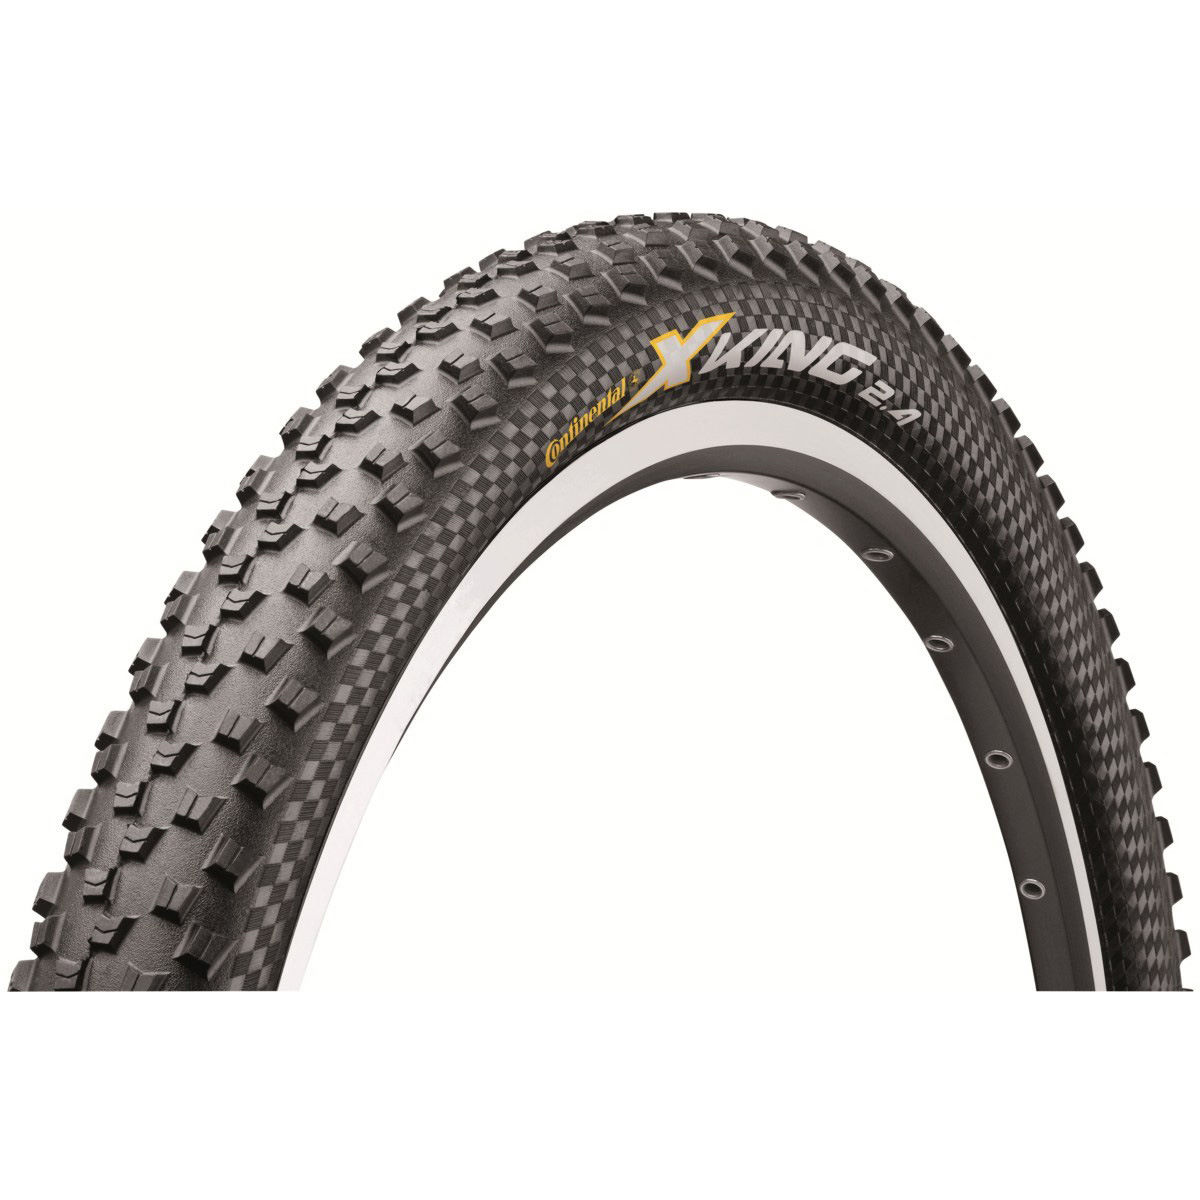 Pneu VTT Continental X King ProTection (souple) - 2.4' 26' Noir